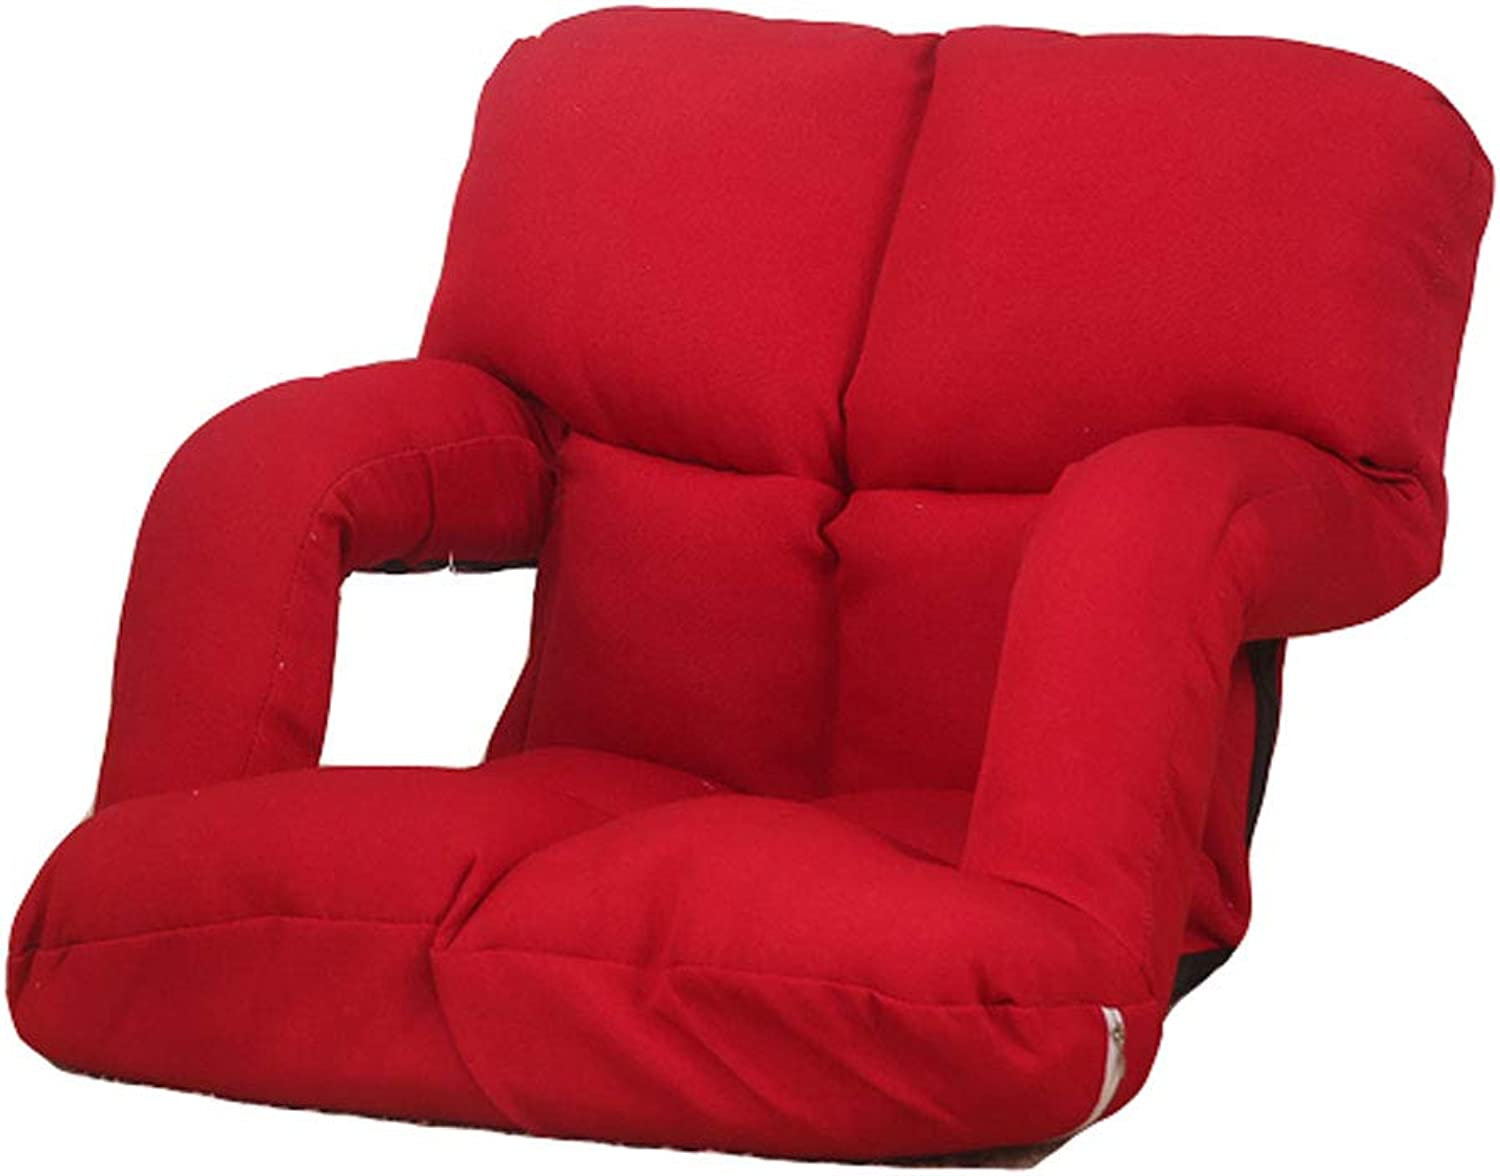 Sofas & Couches Creative Personality Lazy Couch Single Armrest Computer Chair Casual Breastfeeding Recliner Padded Folding Floor Seat Sofas & Couches (color   Red)